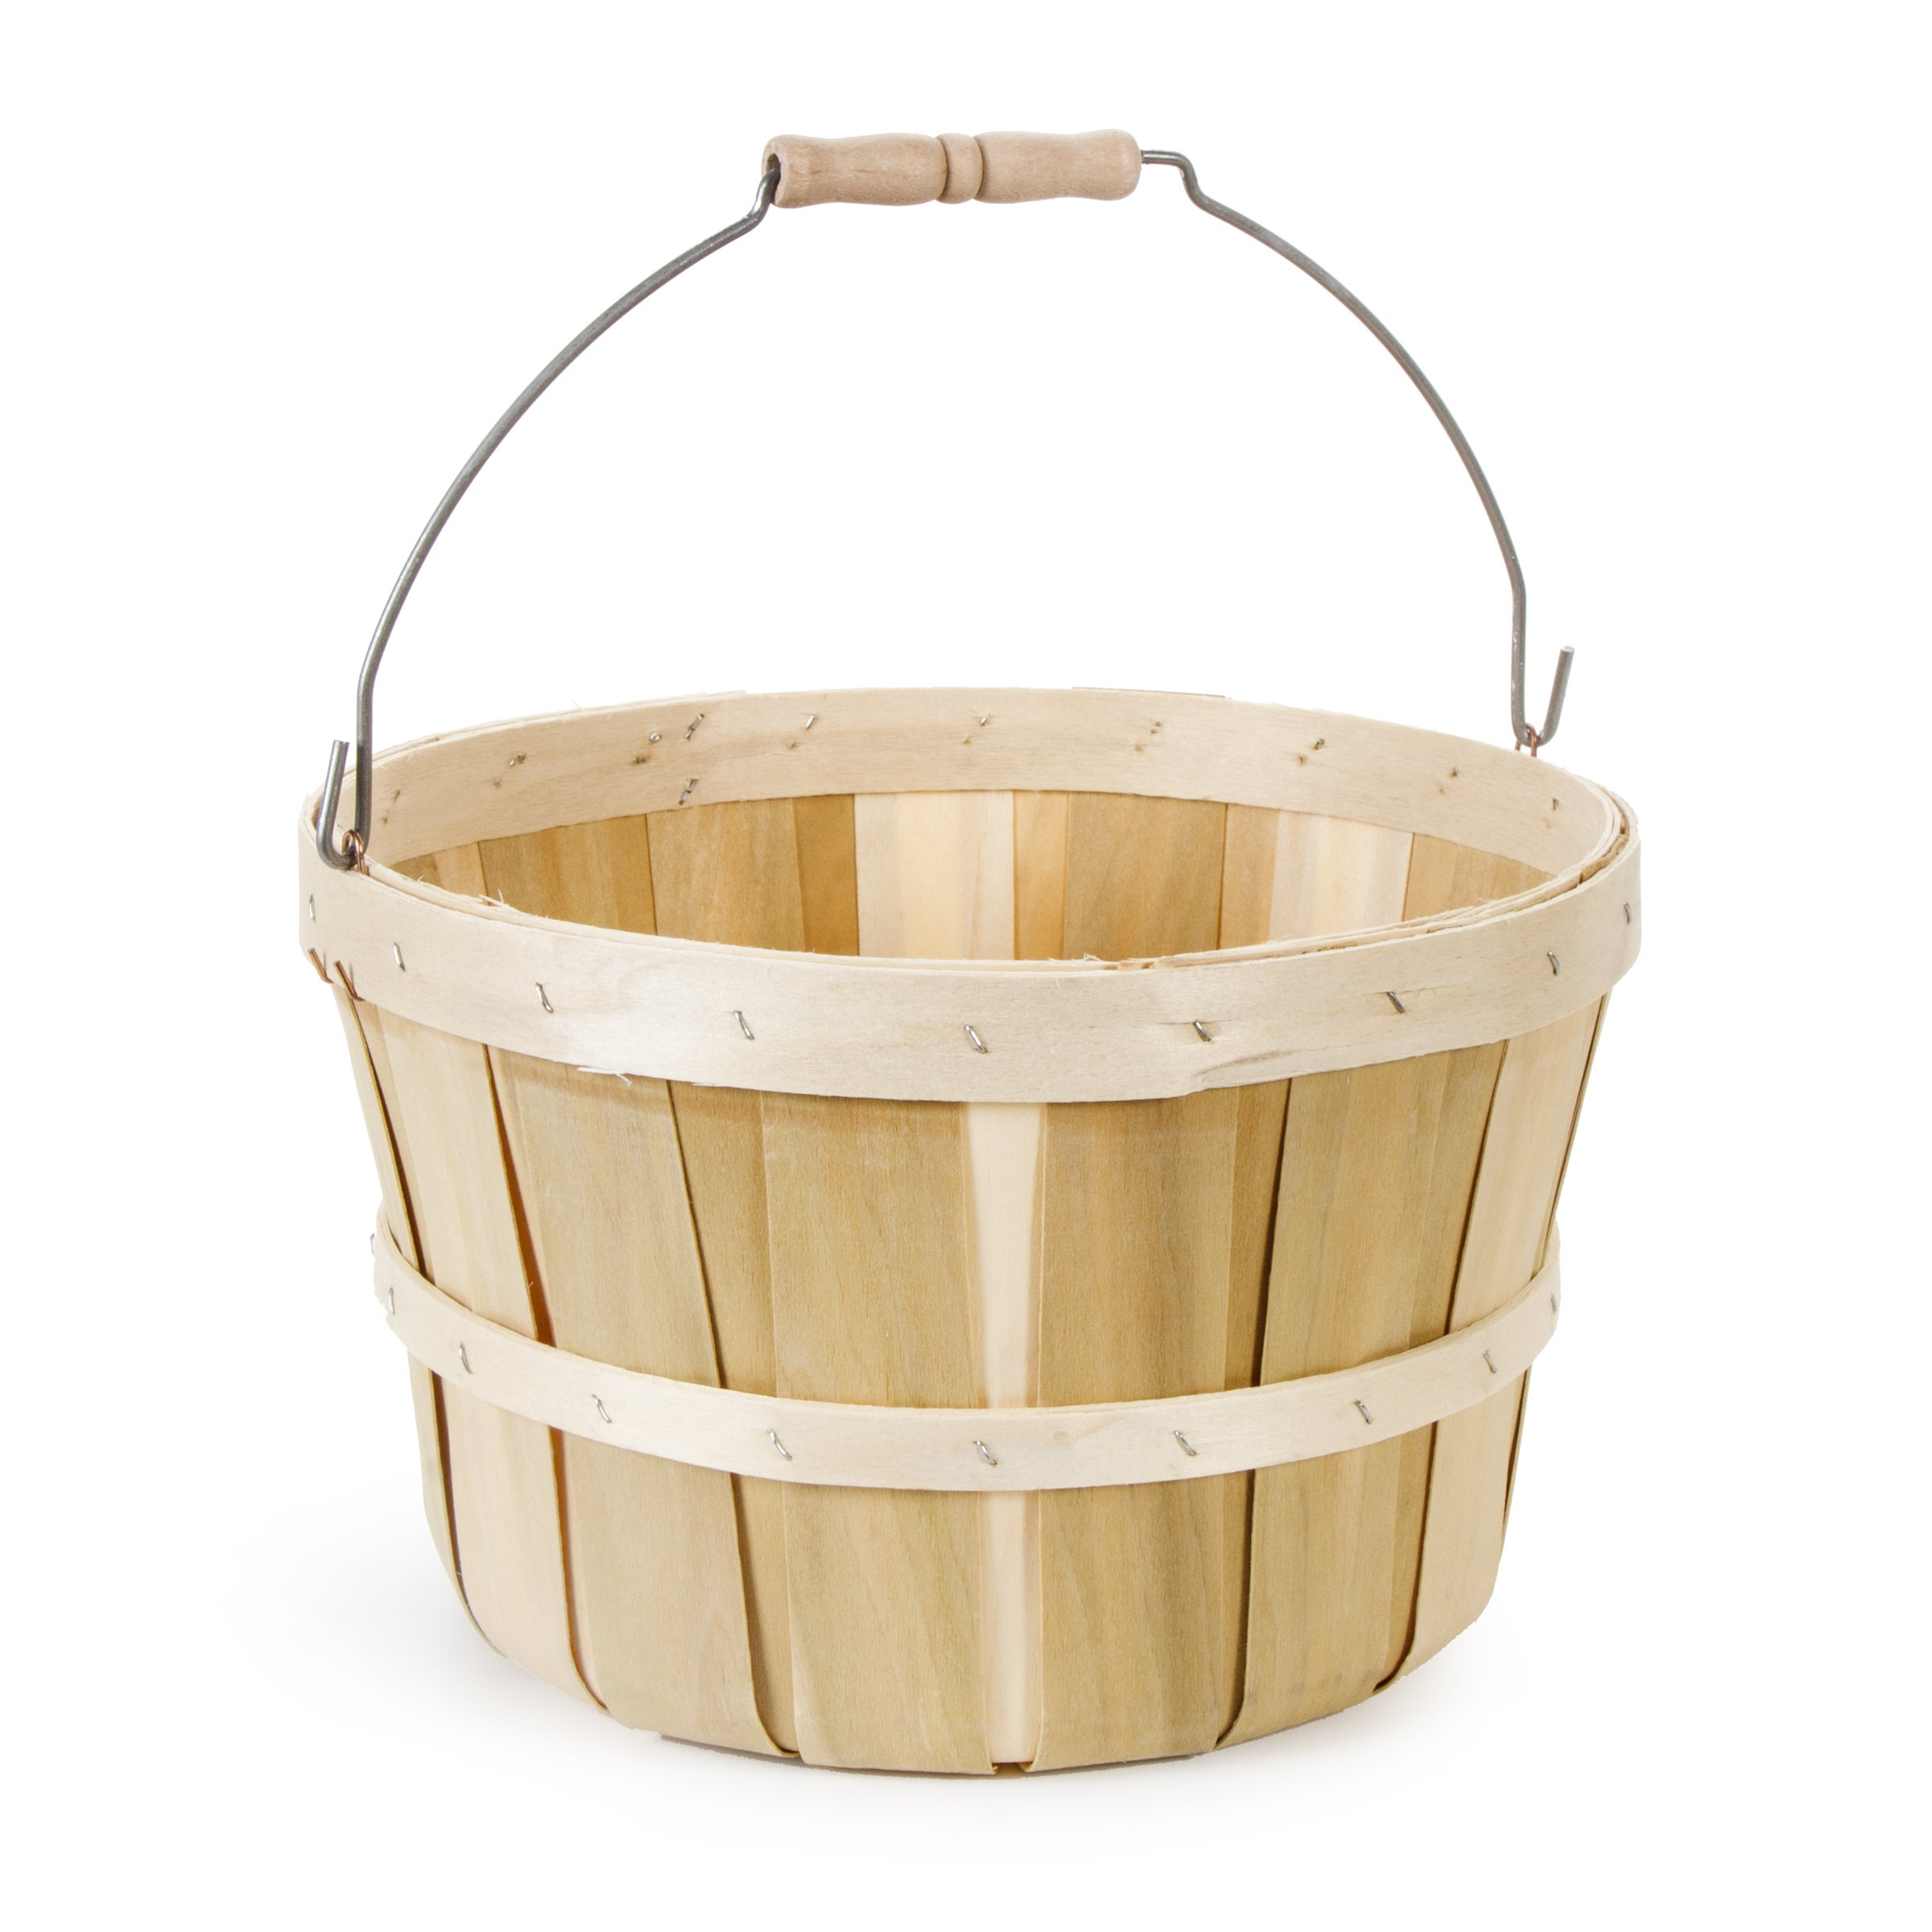 Darice RB1PK Natural Wood Round Chip Basket with Handle by Darice